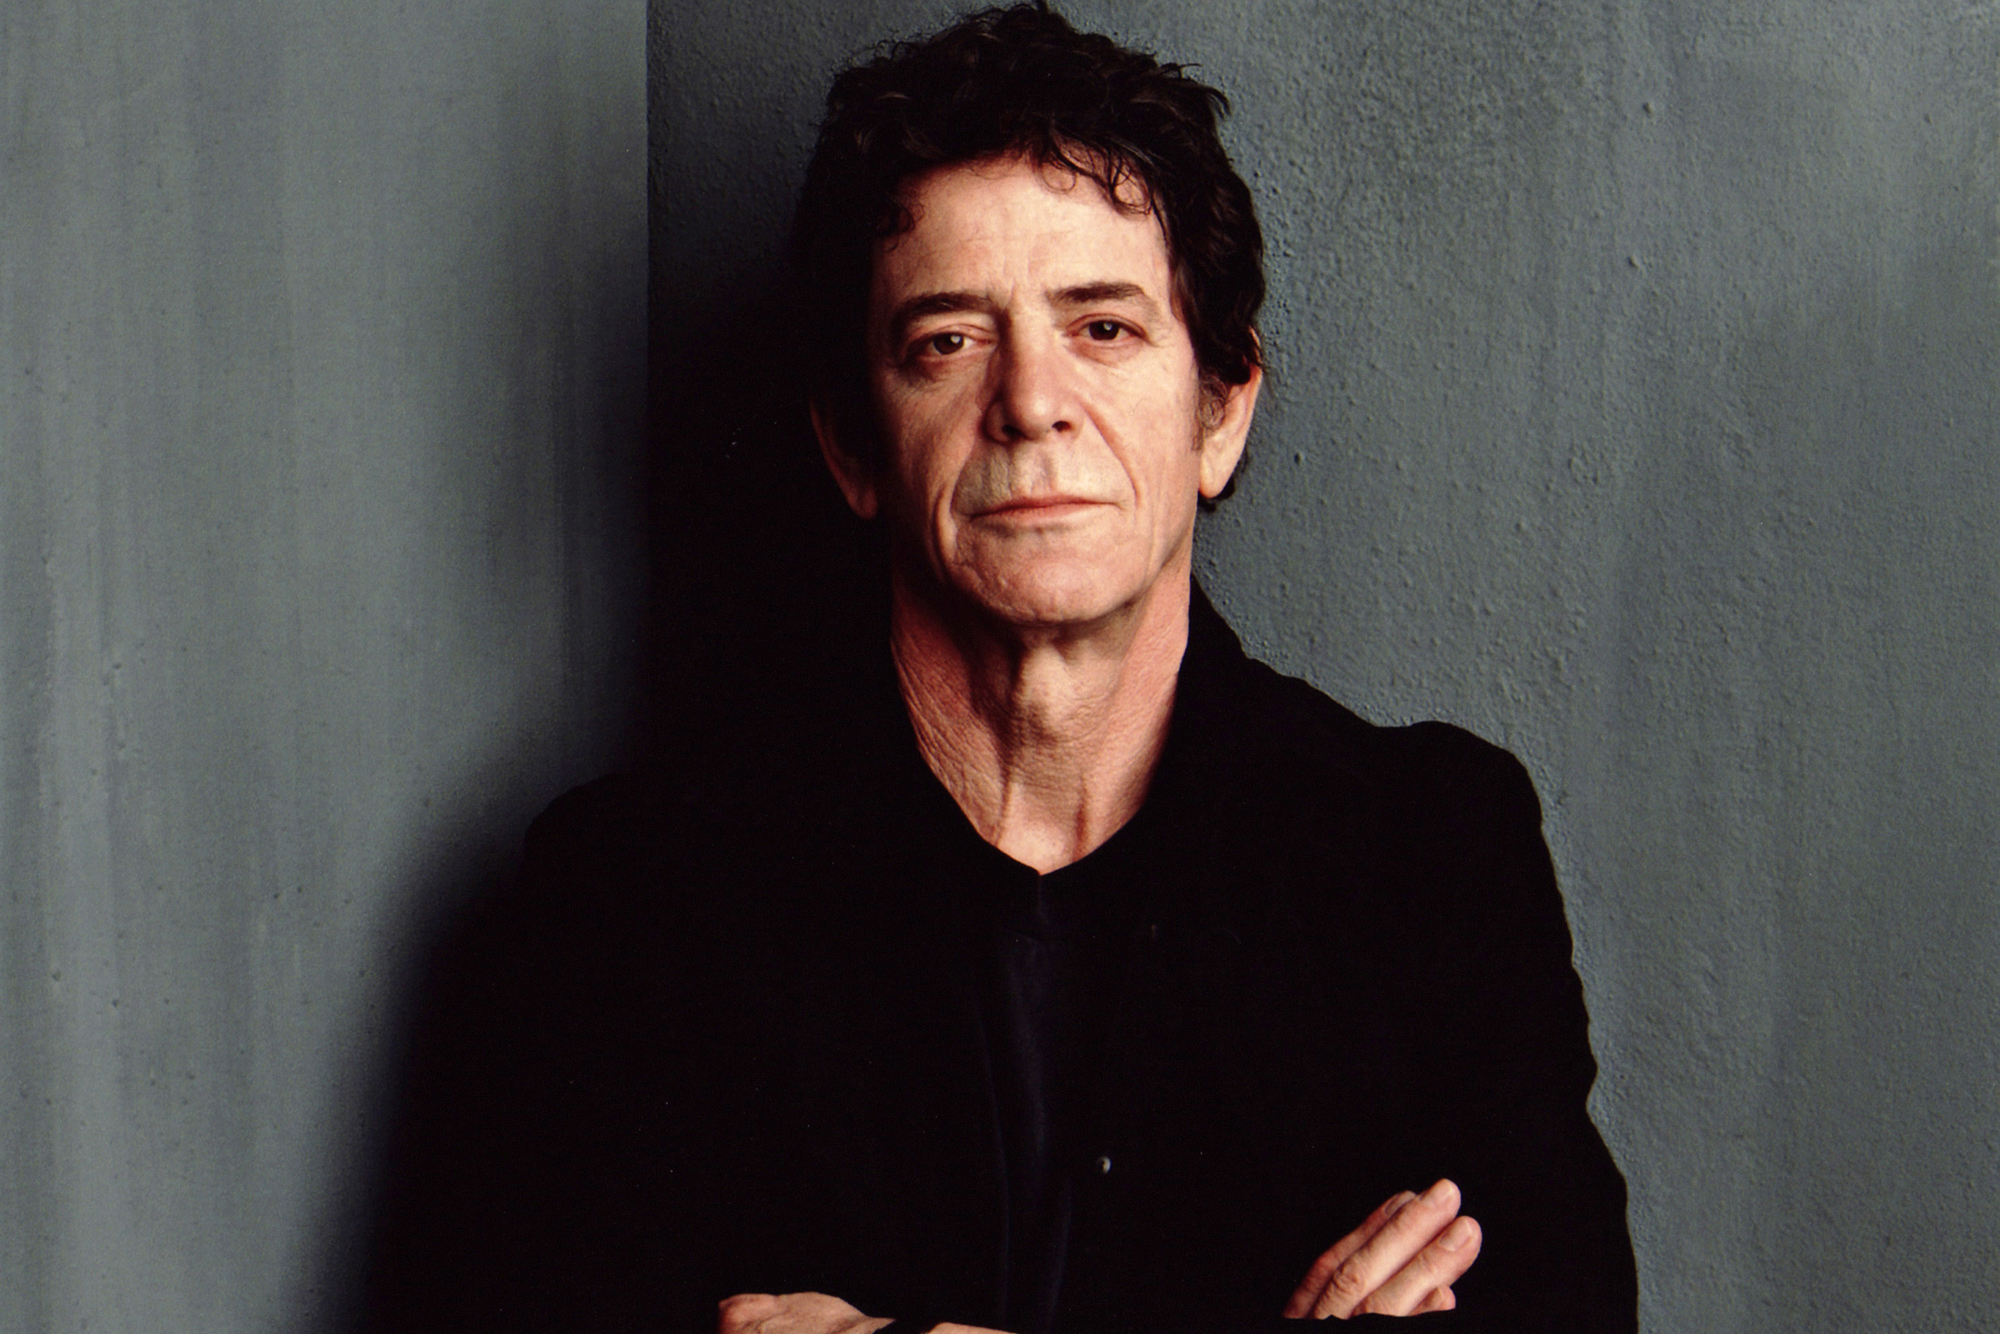 Sad Day Lou Reed Died Maxfavilli Com